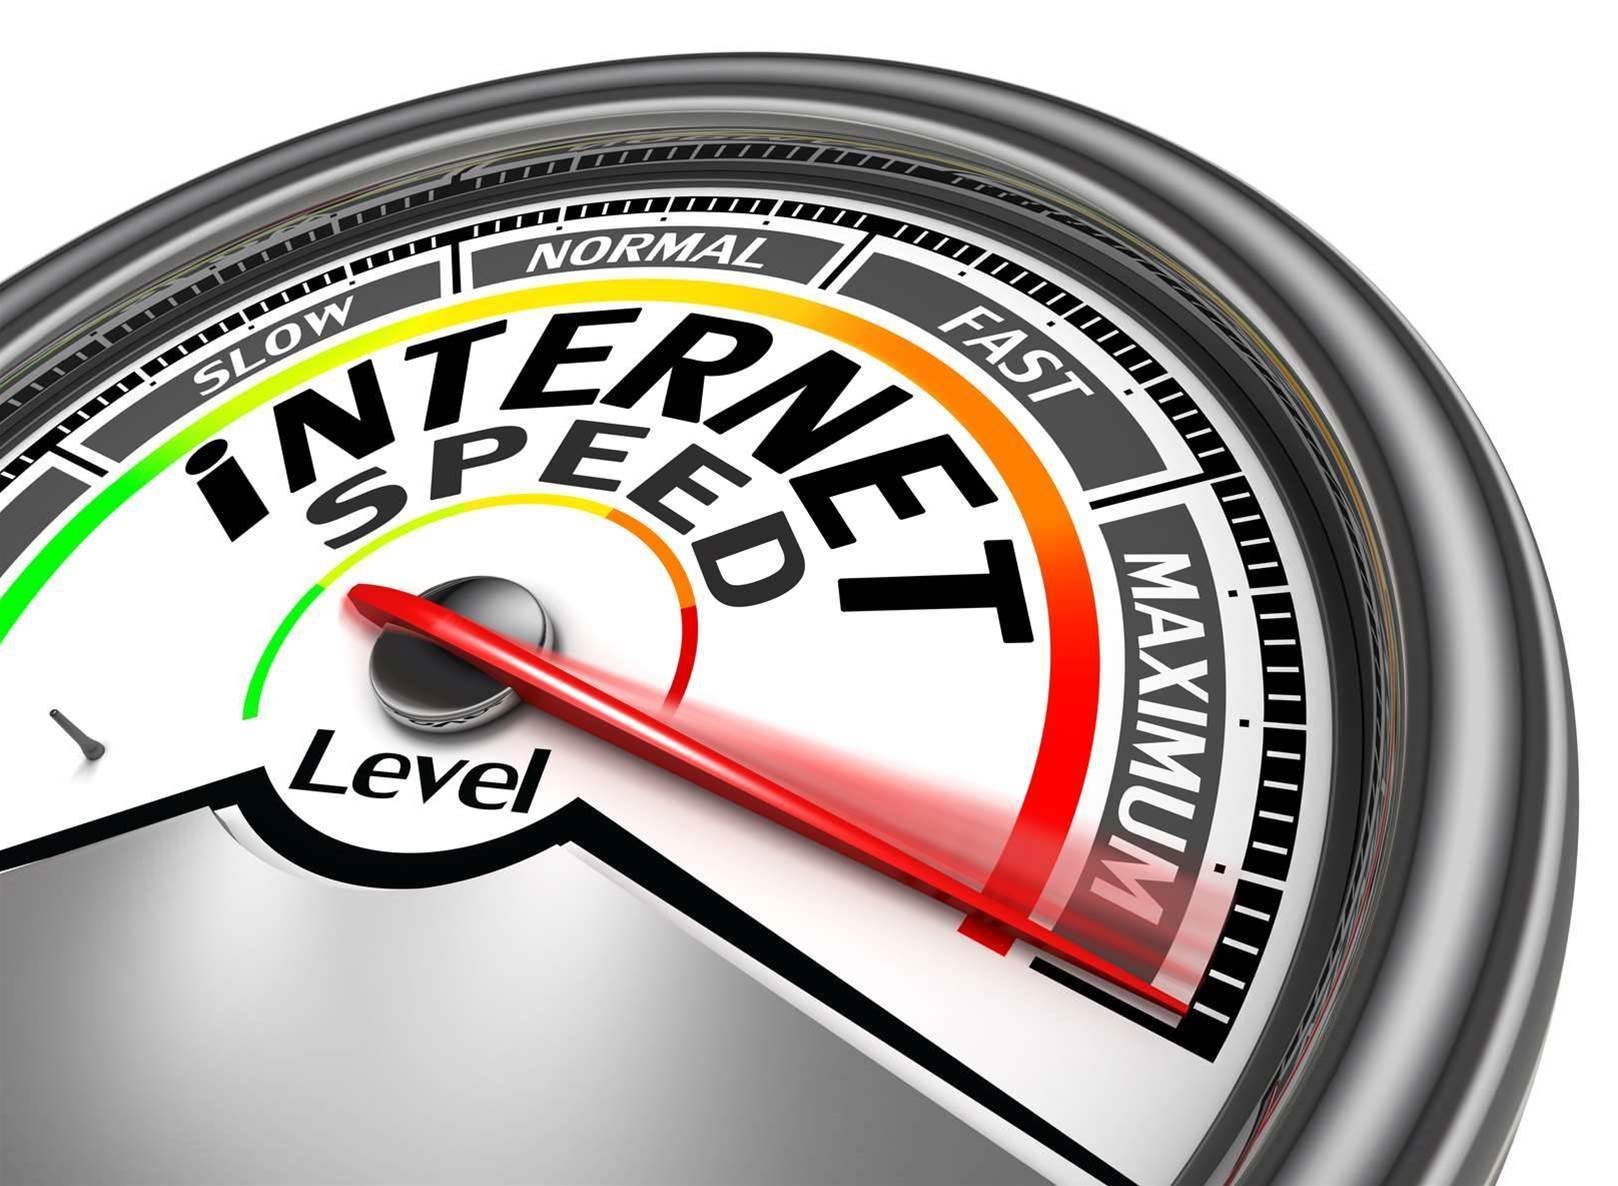 'Vague' speed claims confuse 80 percent of broadband users: ACCC